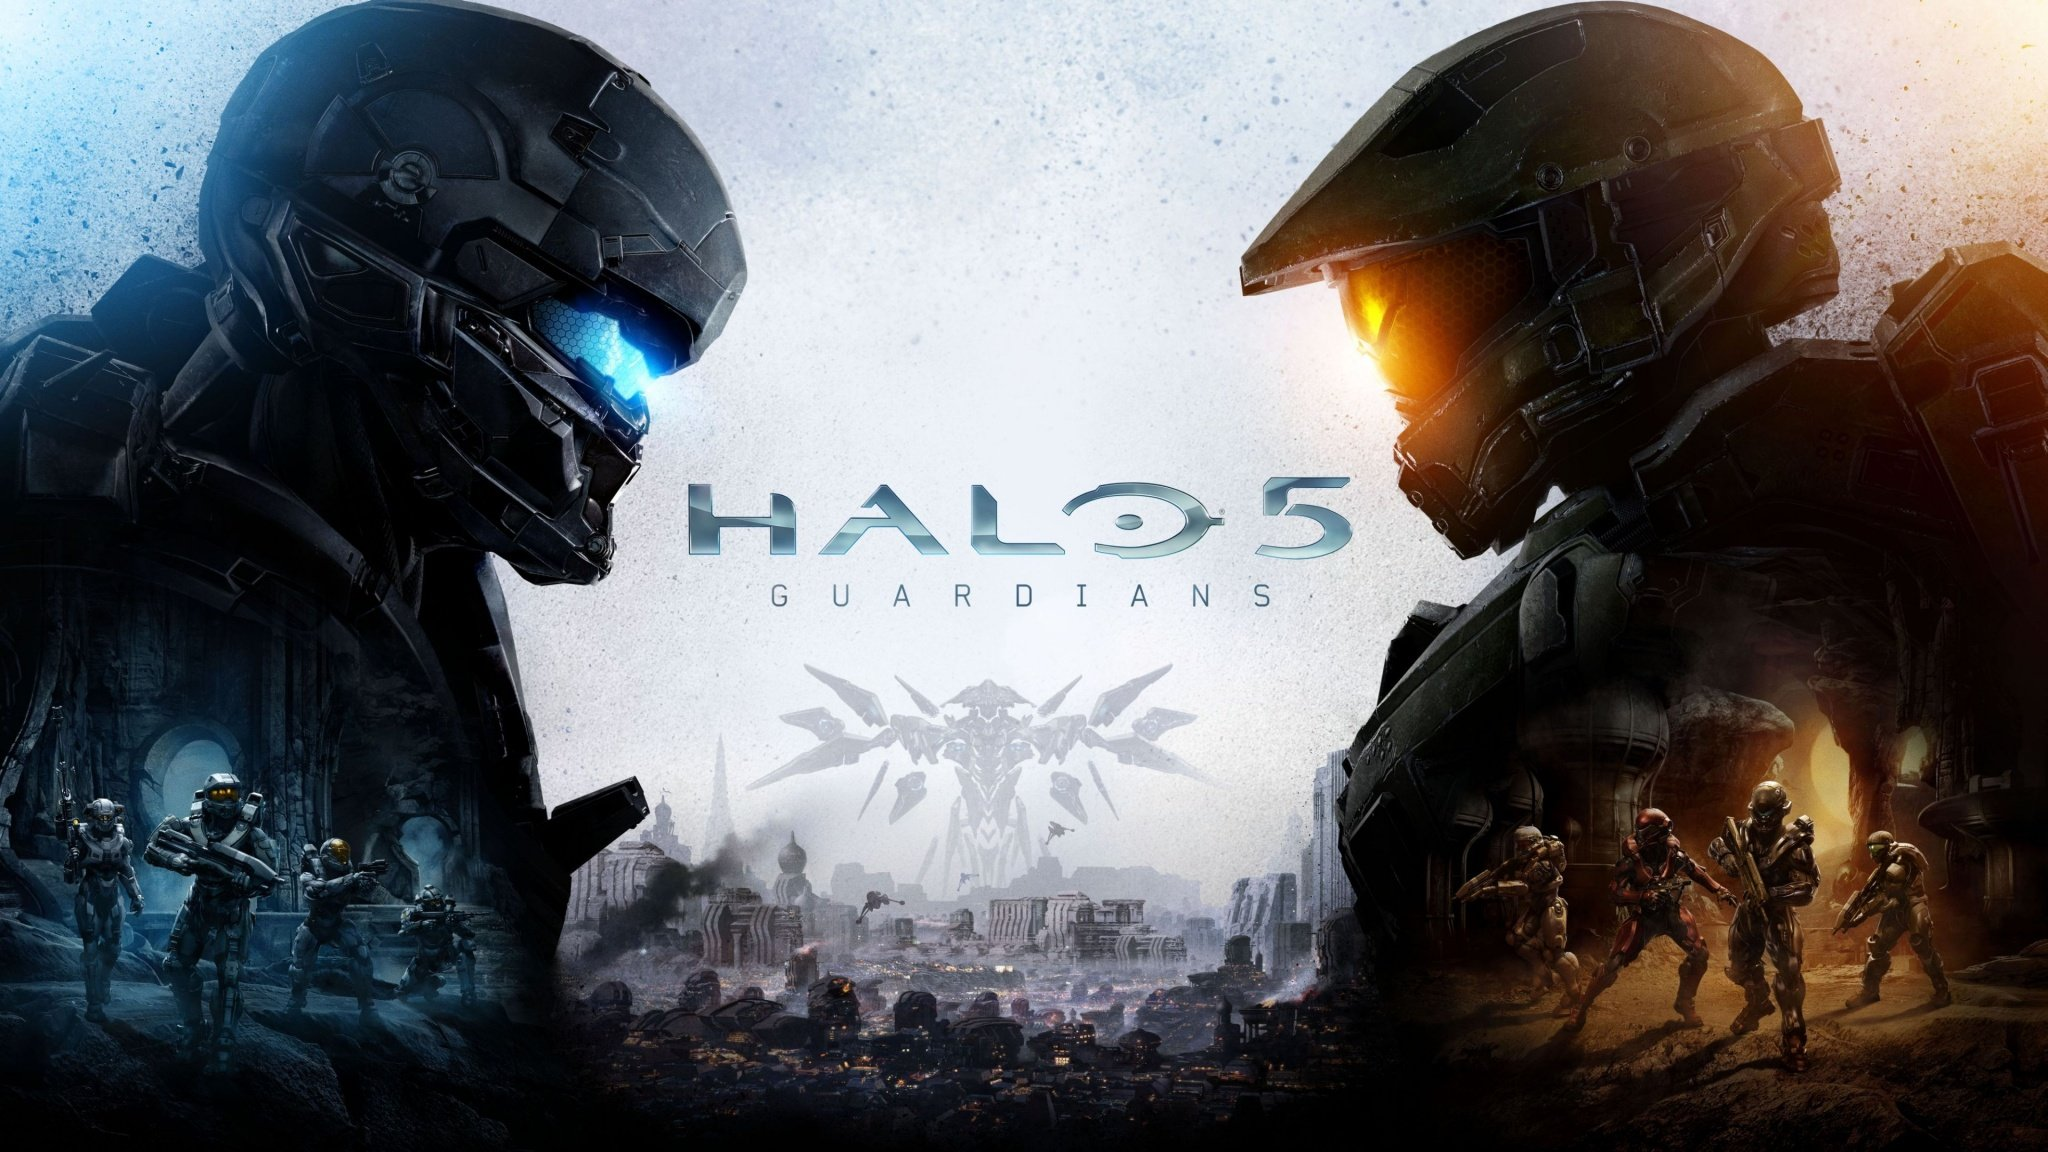 Halo 5 Guardians Poster 2048 x 1152 Download Close 2048x1152